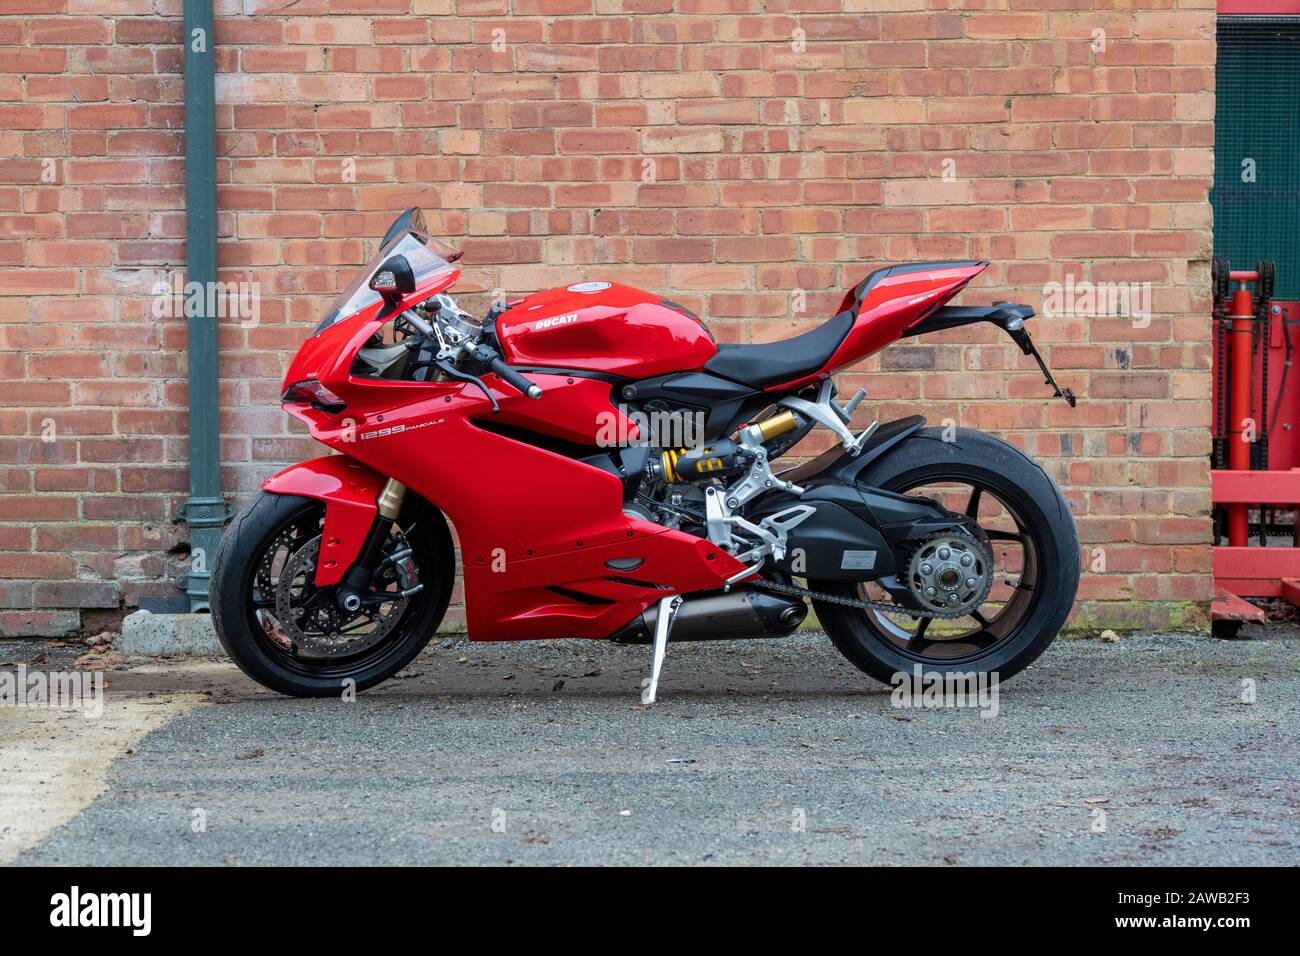 Ducati Panigale 1299cc motorcycle at Bicester heritage centre sunday scramble event. Bicester, Oxfordshire, England Stock Photo